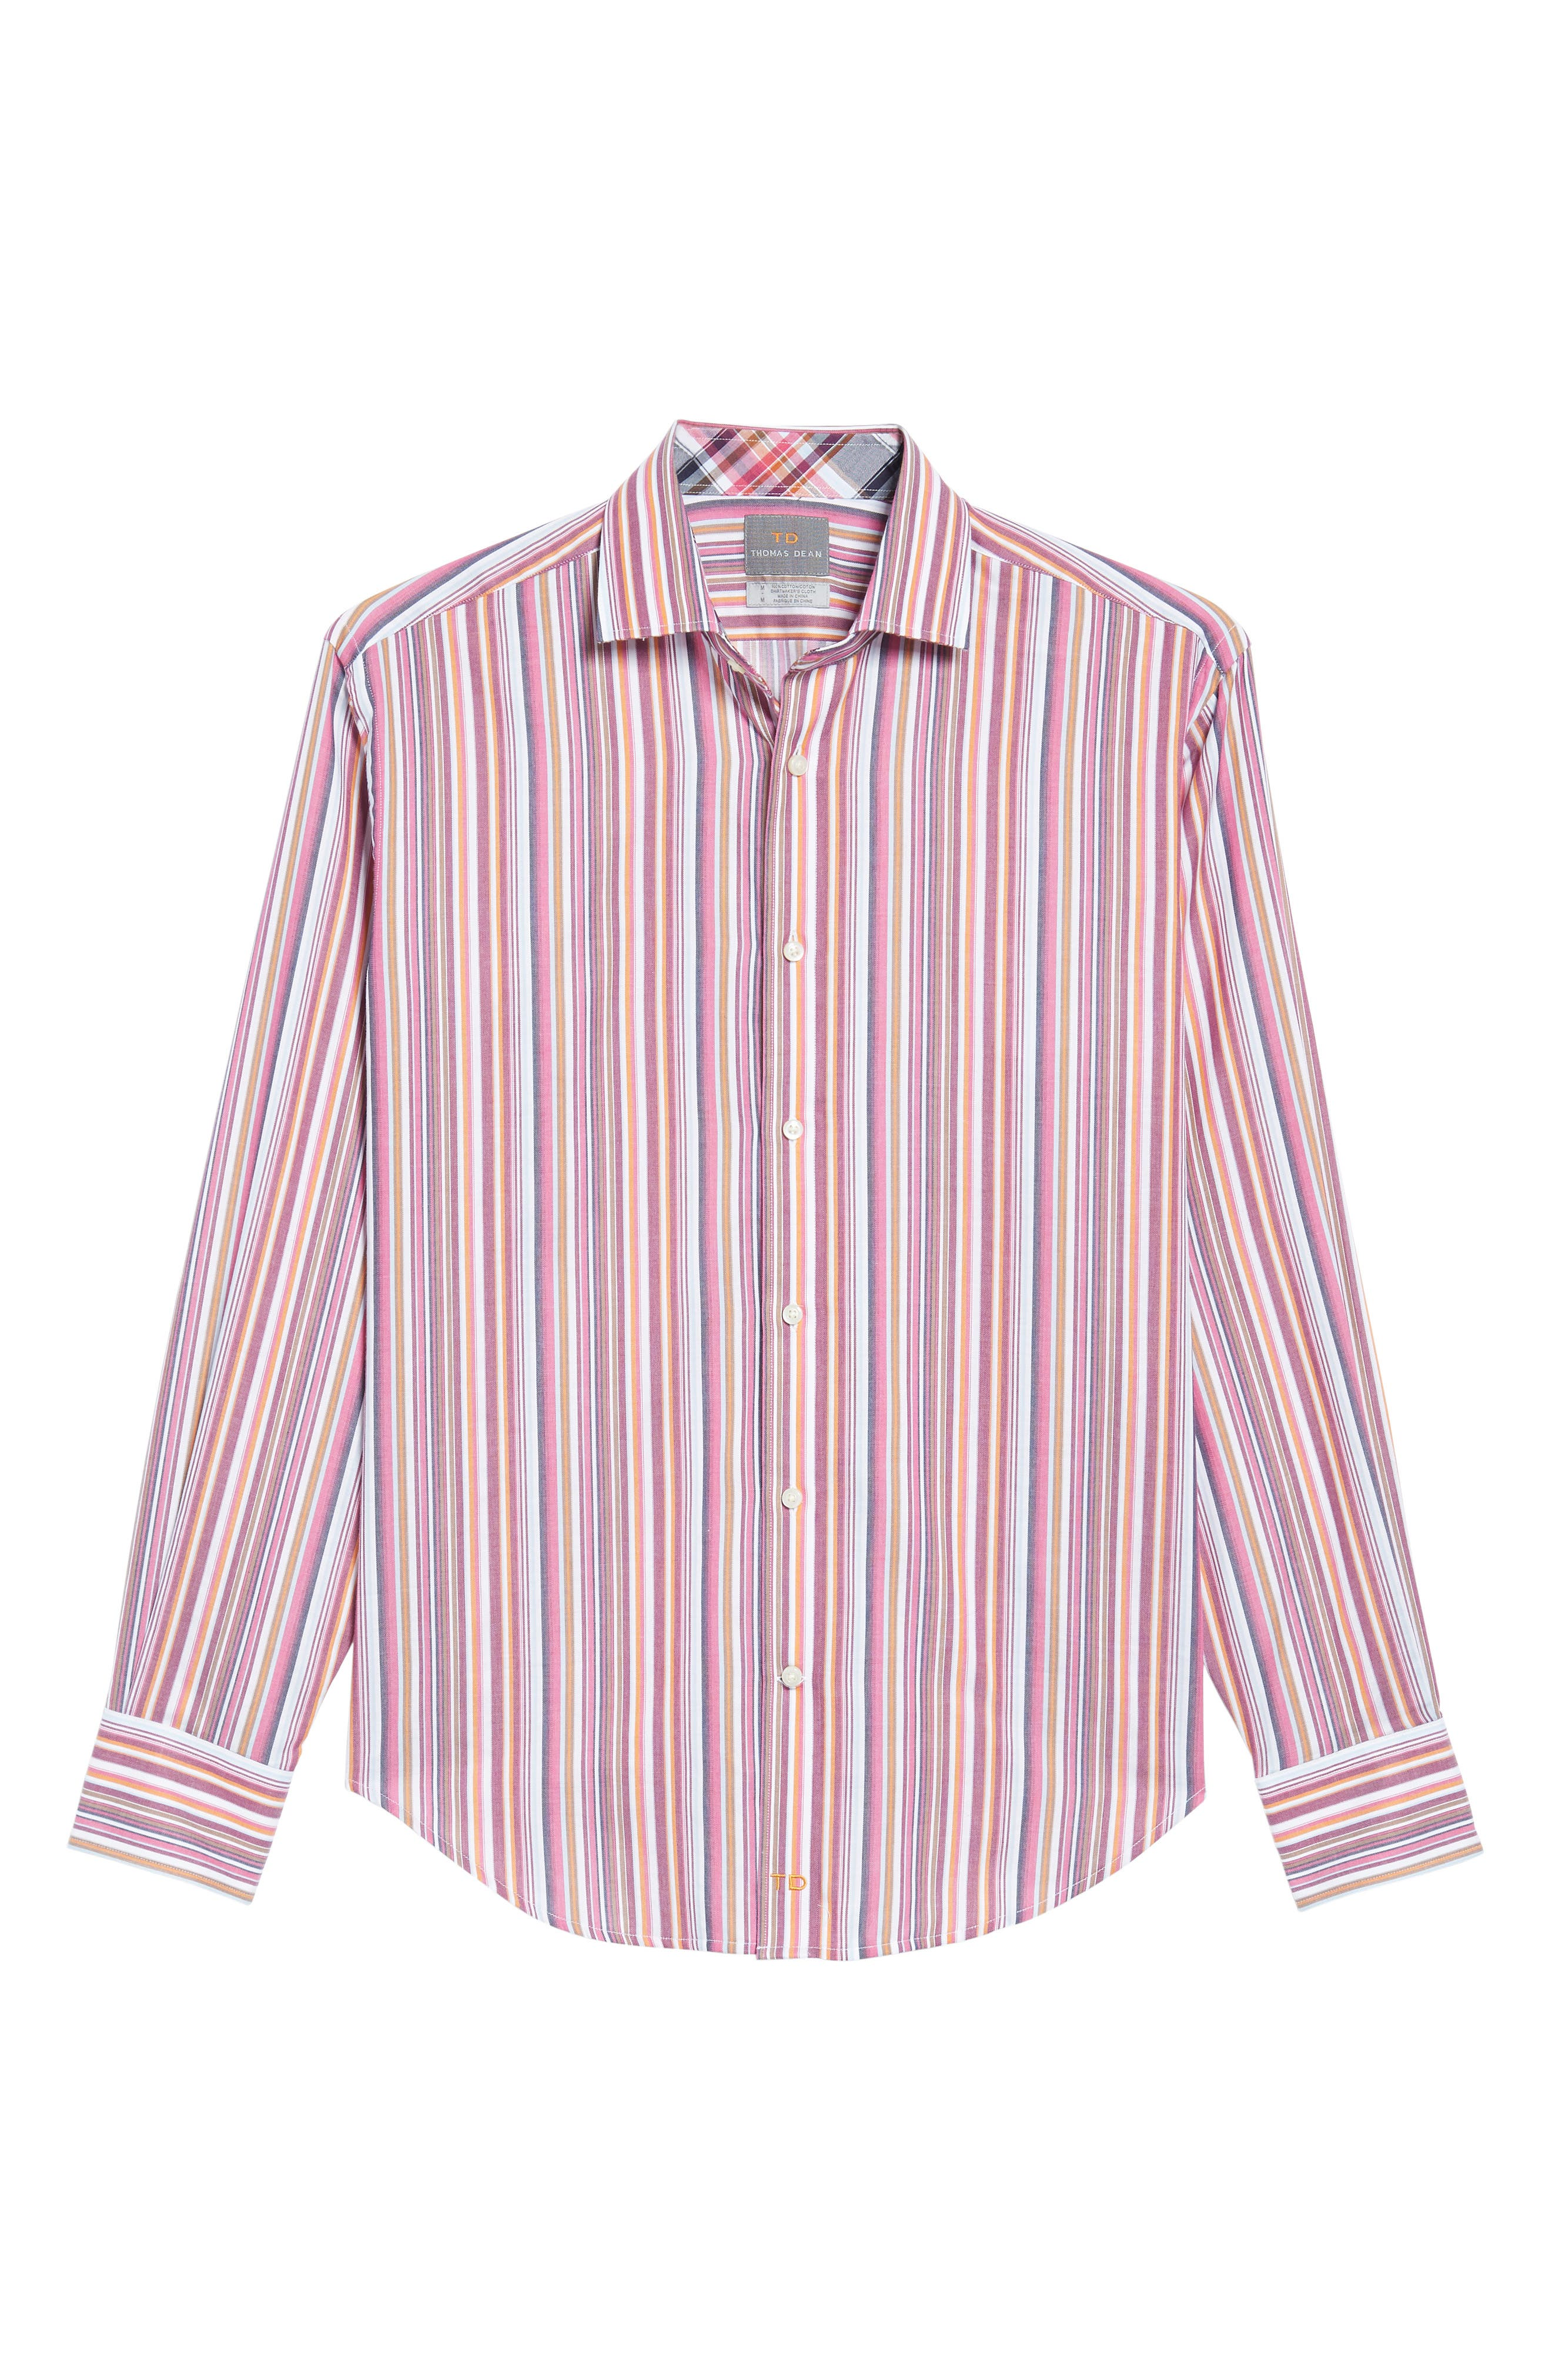 Regular Fit Stripe Sport Shirt,                             Alternate thumbnail 6, color,